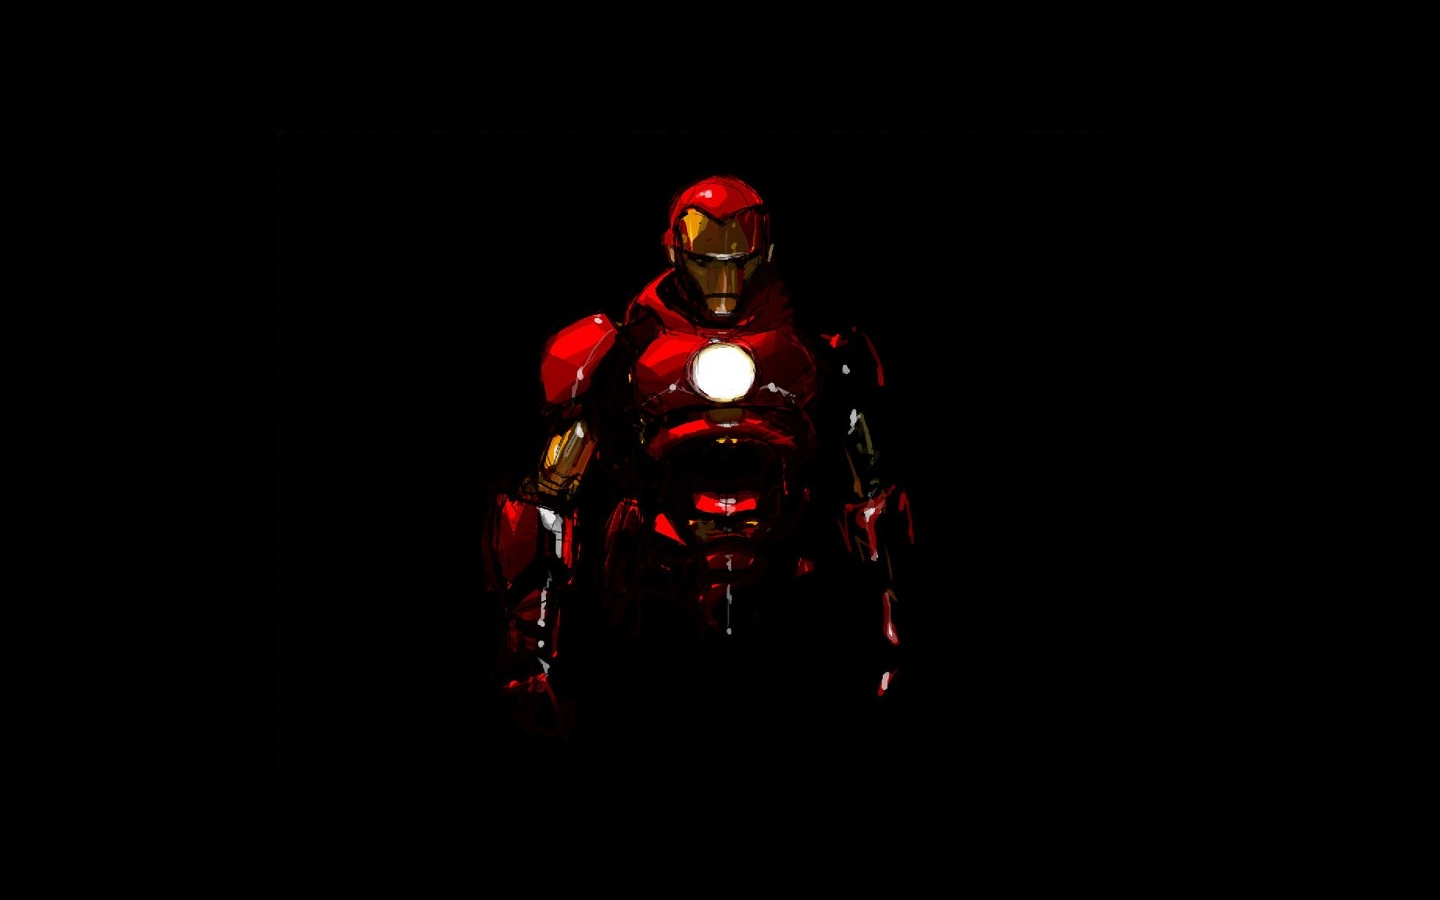 Iron Man Wallpaper Pure Red